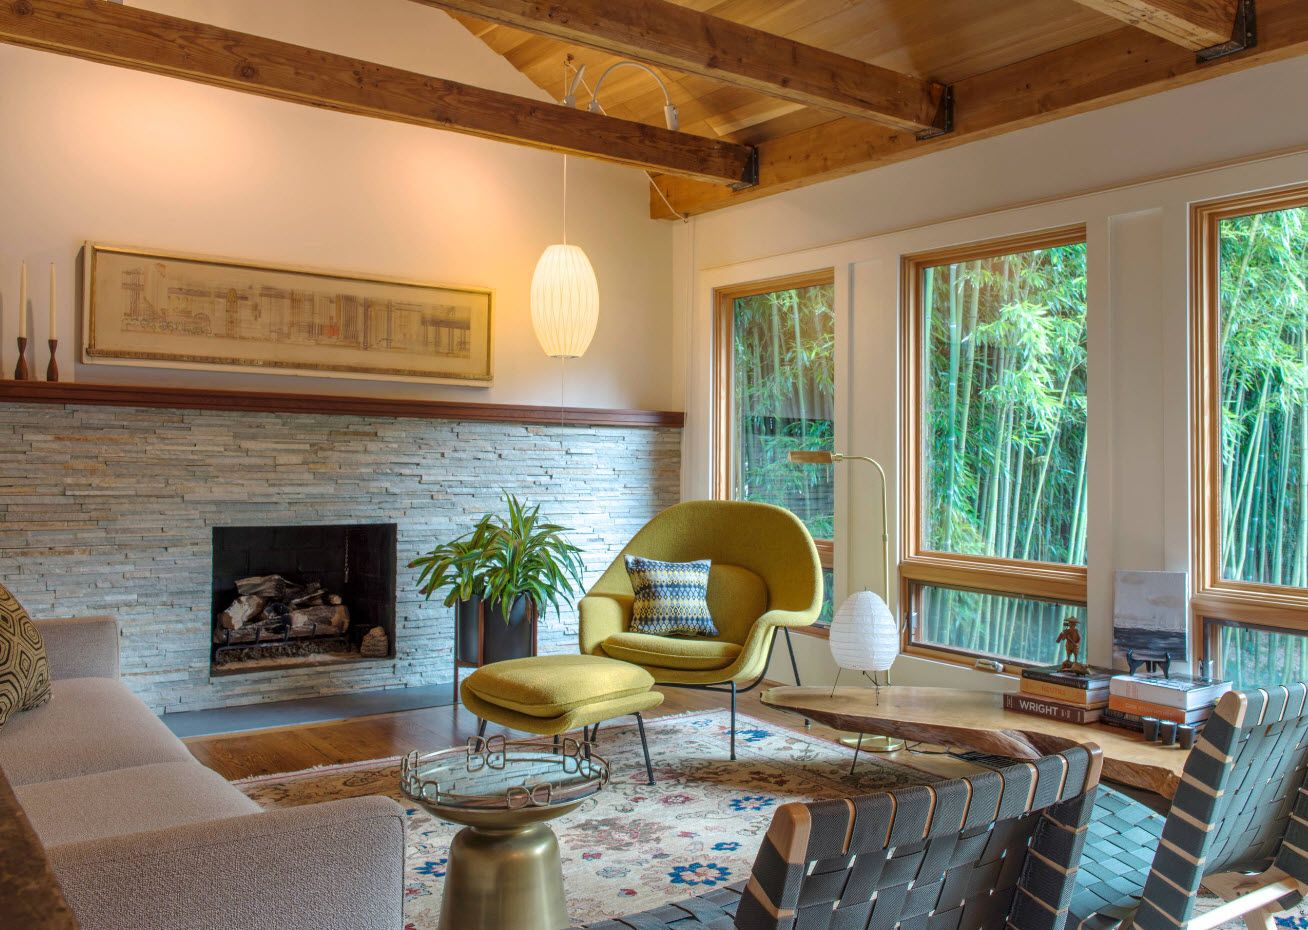 Open living room layout of the cottage with noble oak ceiling beams